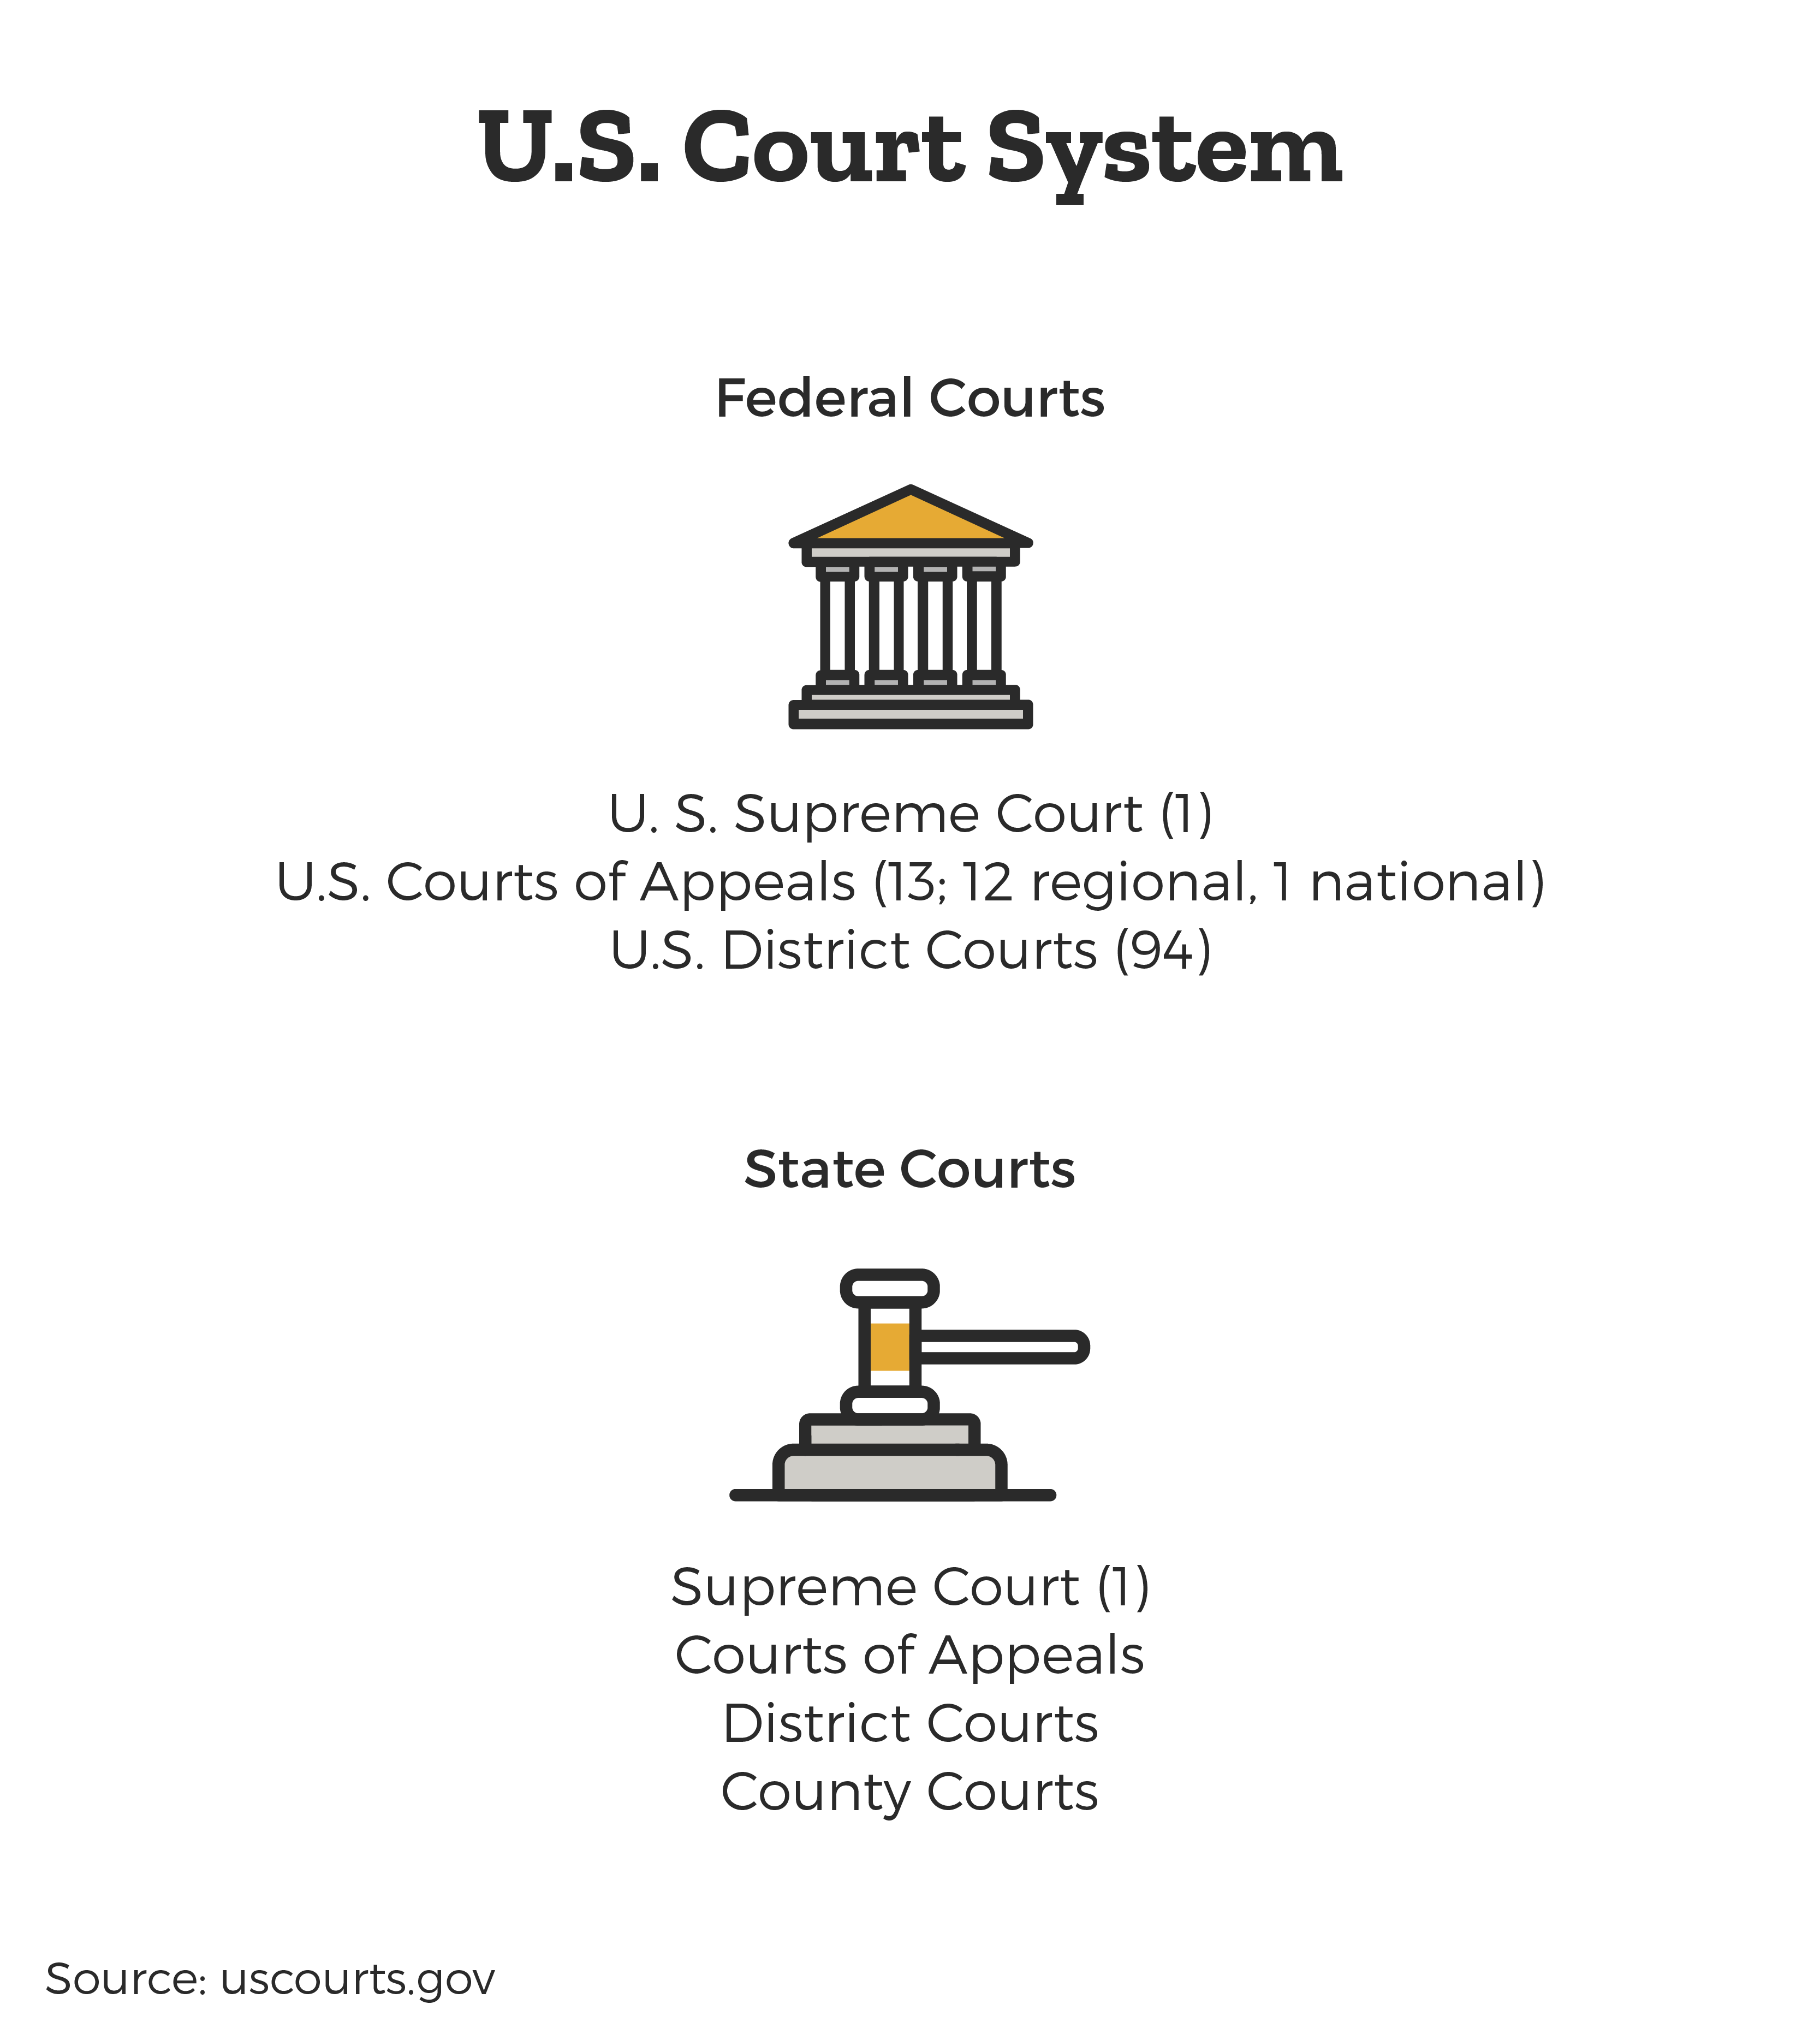 US Court Structure - Federal Courts, State Courts